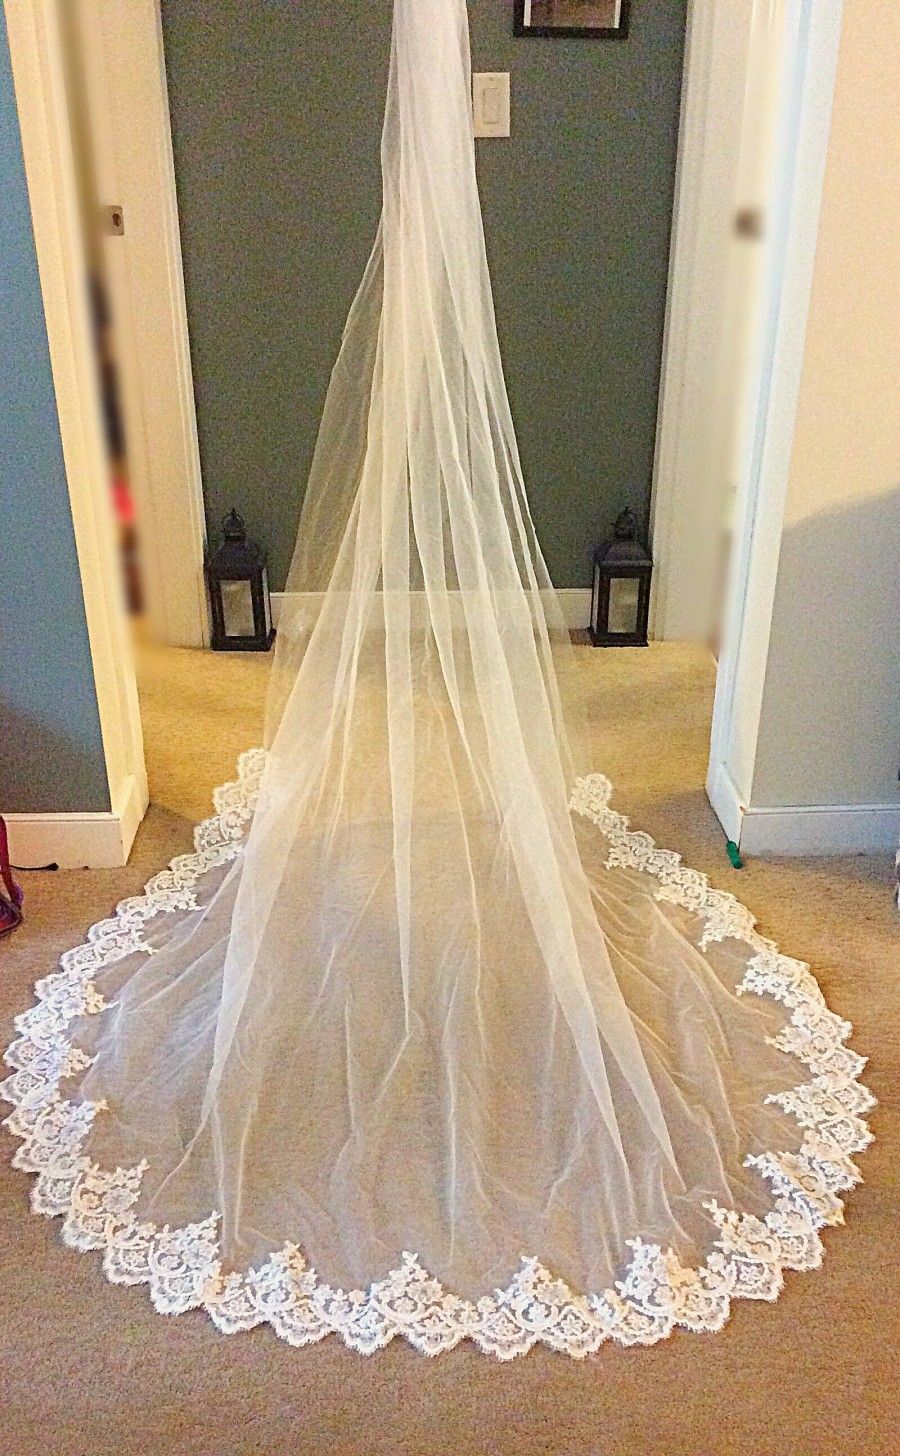 Wedding - Cathedral Length Veil. With Lace and sequin detailing